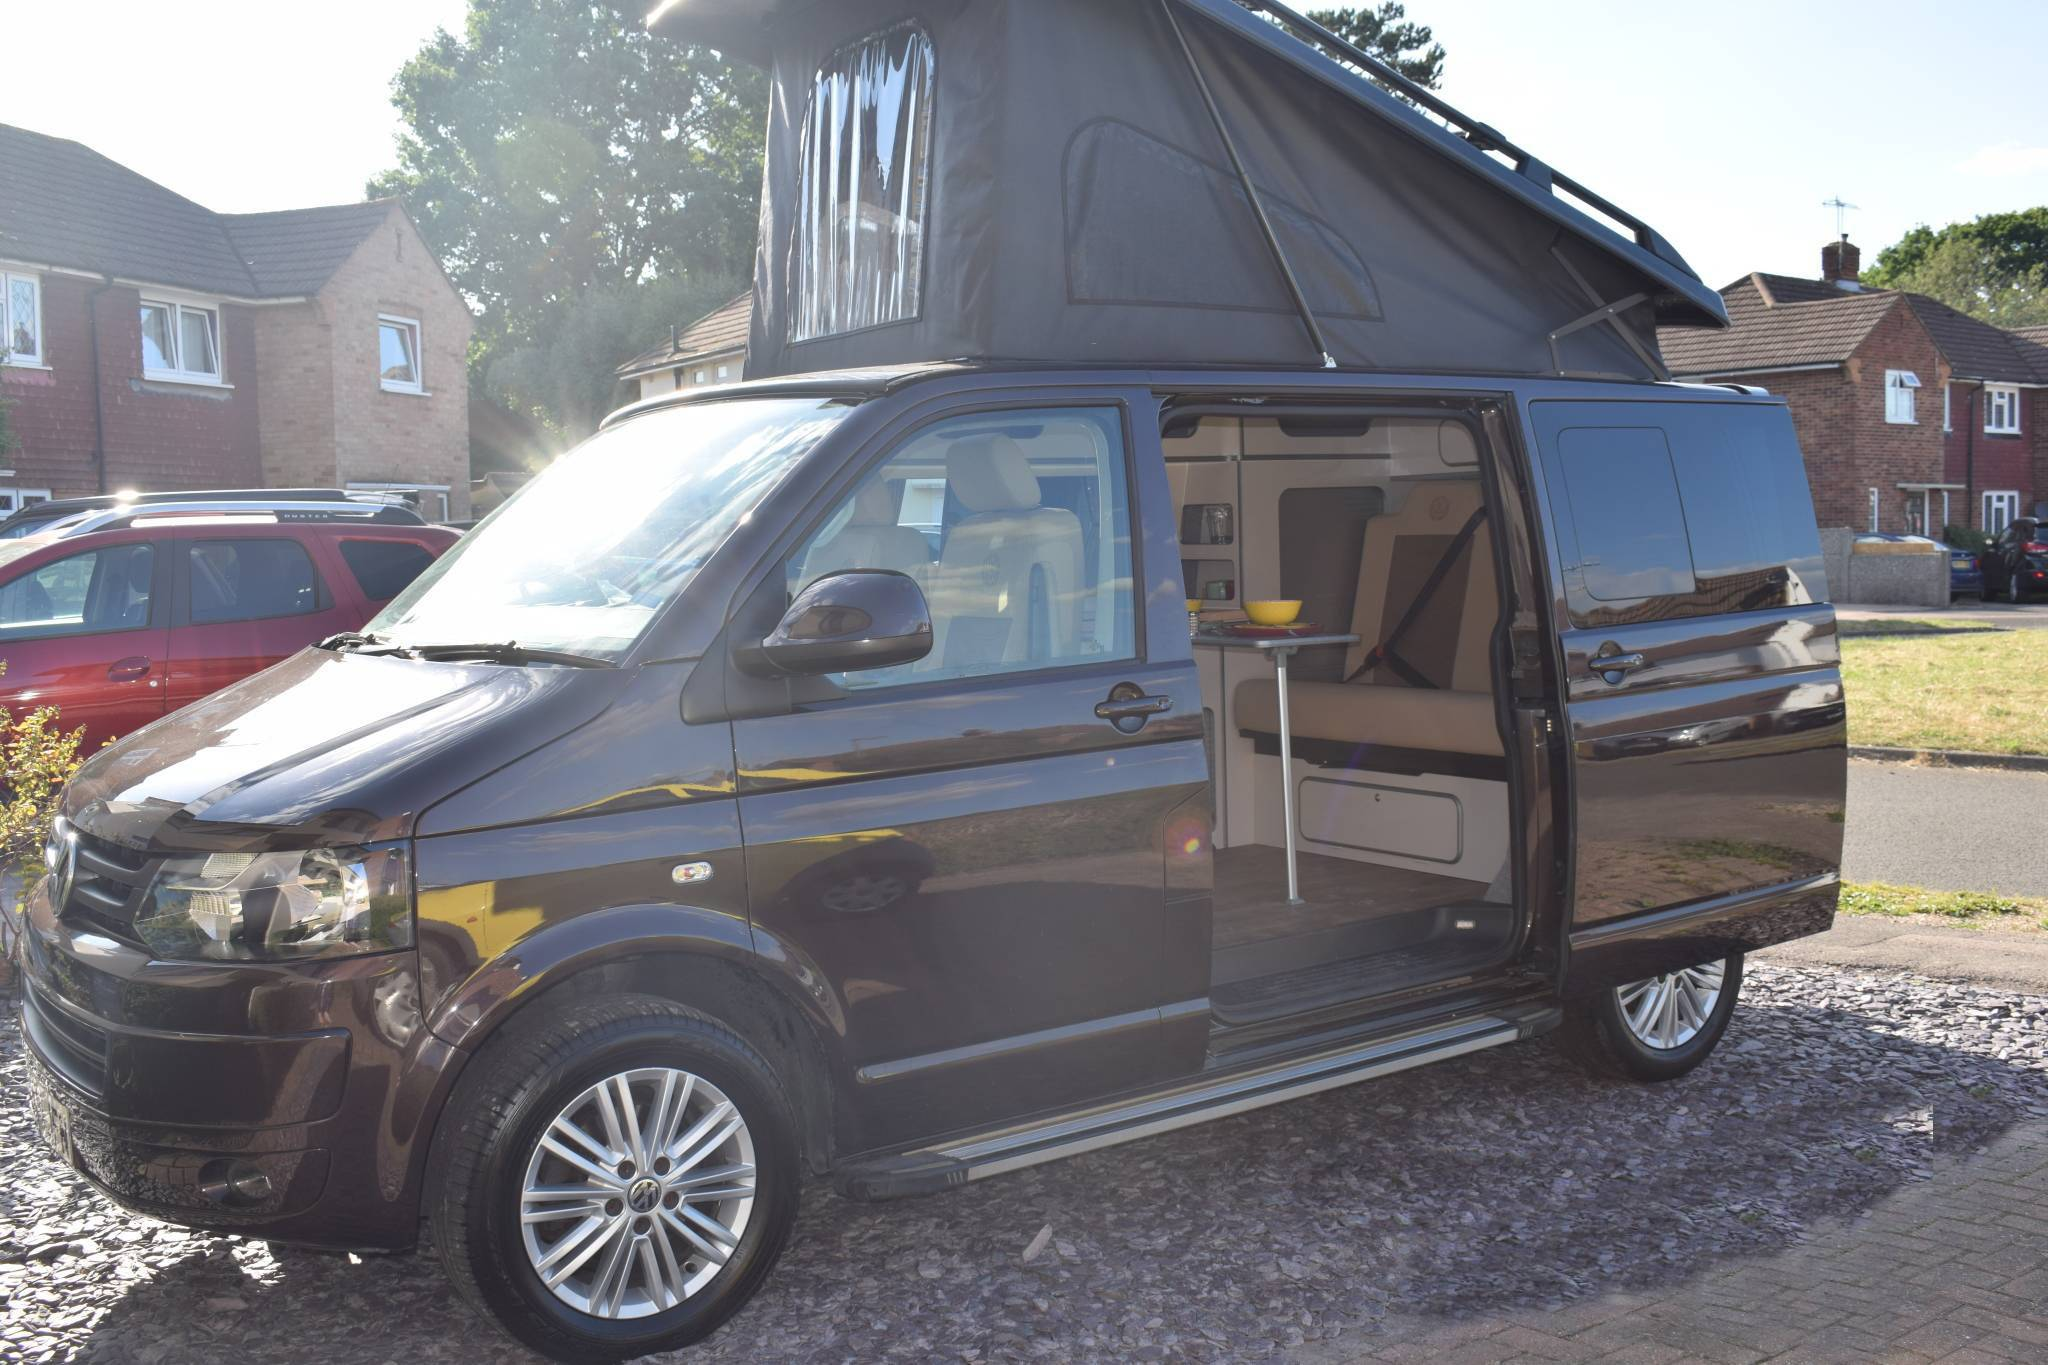 A VW T5 Campervan called BertieT and for hire in horley, Surrey